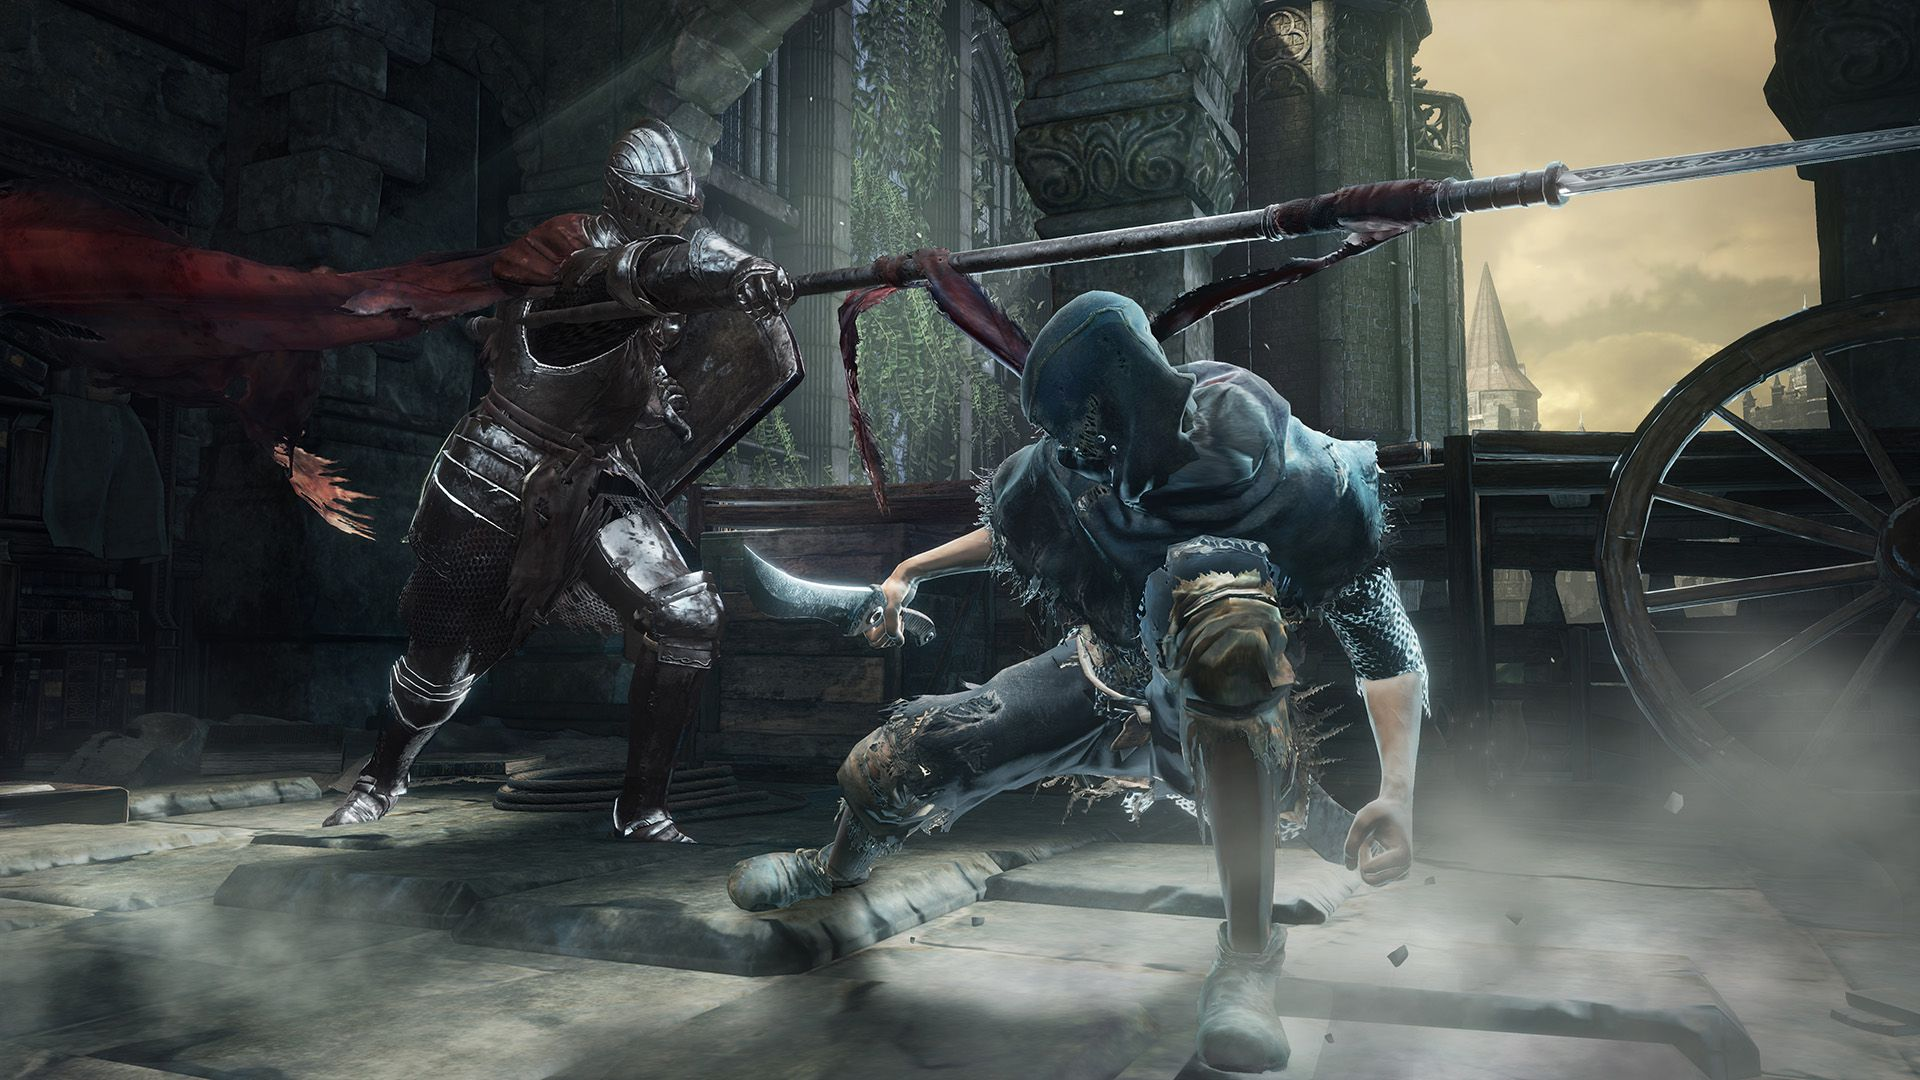 Dark Souls 3: everything we know from playing the first four hours